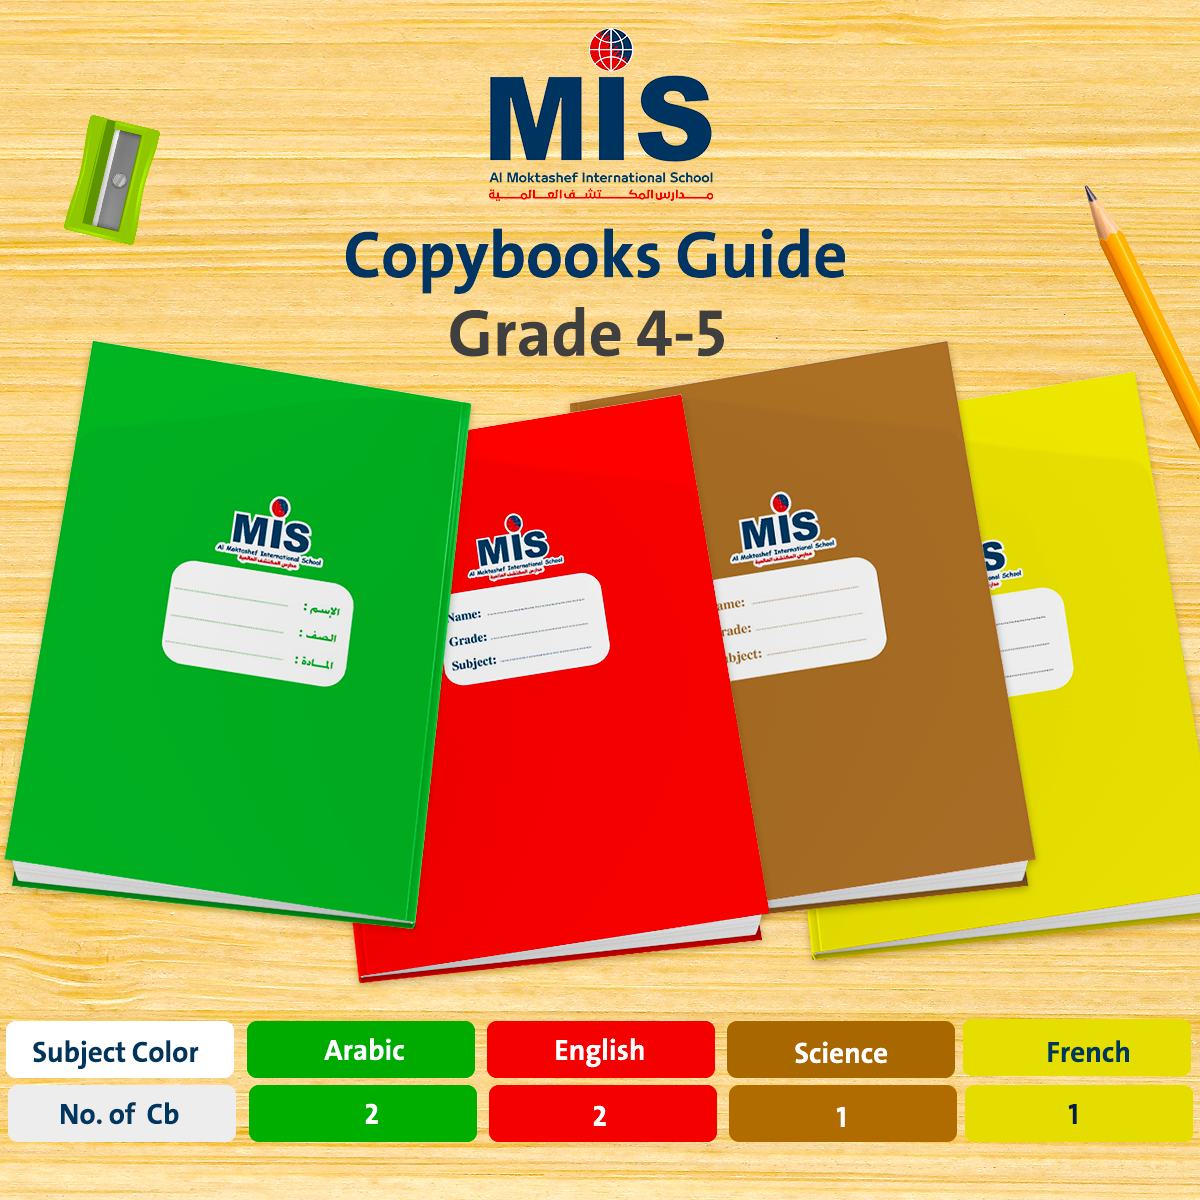 G 4 and 5 Copybooks Guide